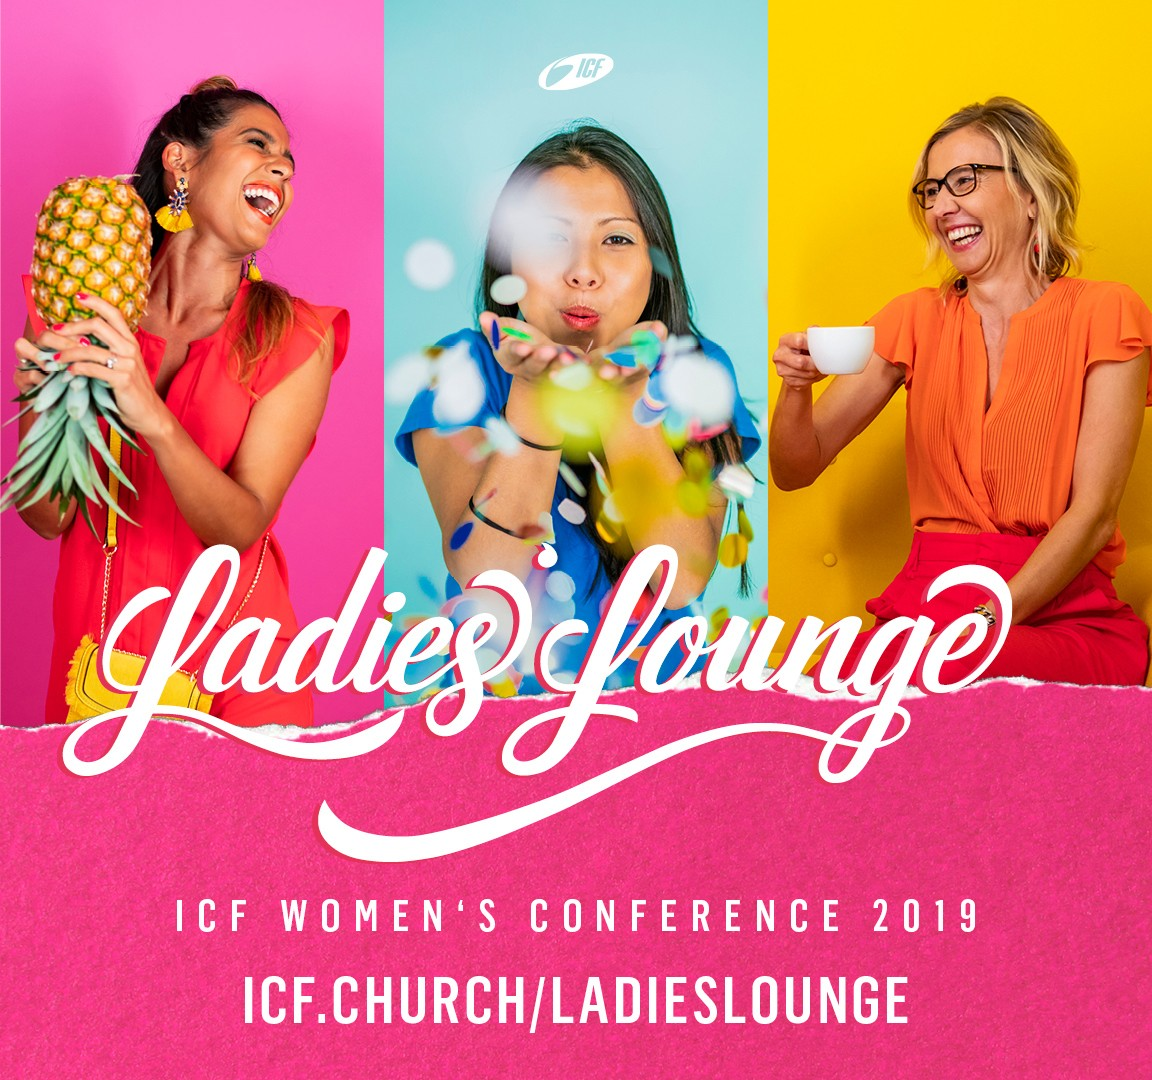 ICF Ladies Lounge 2019 - JOY! in Zürich